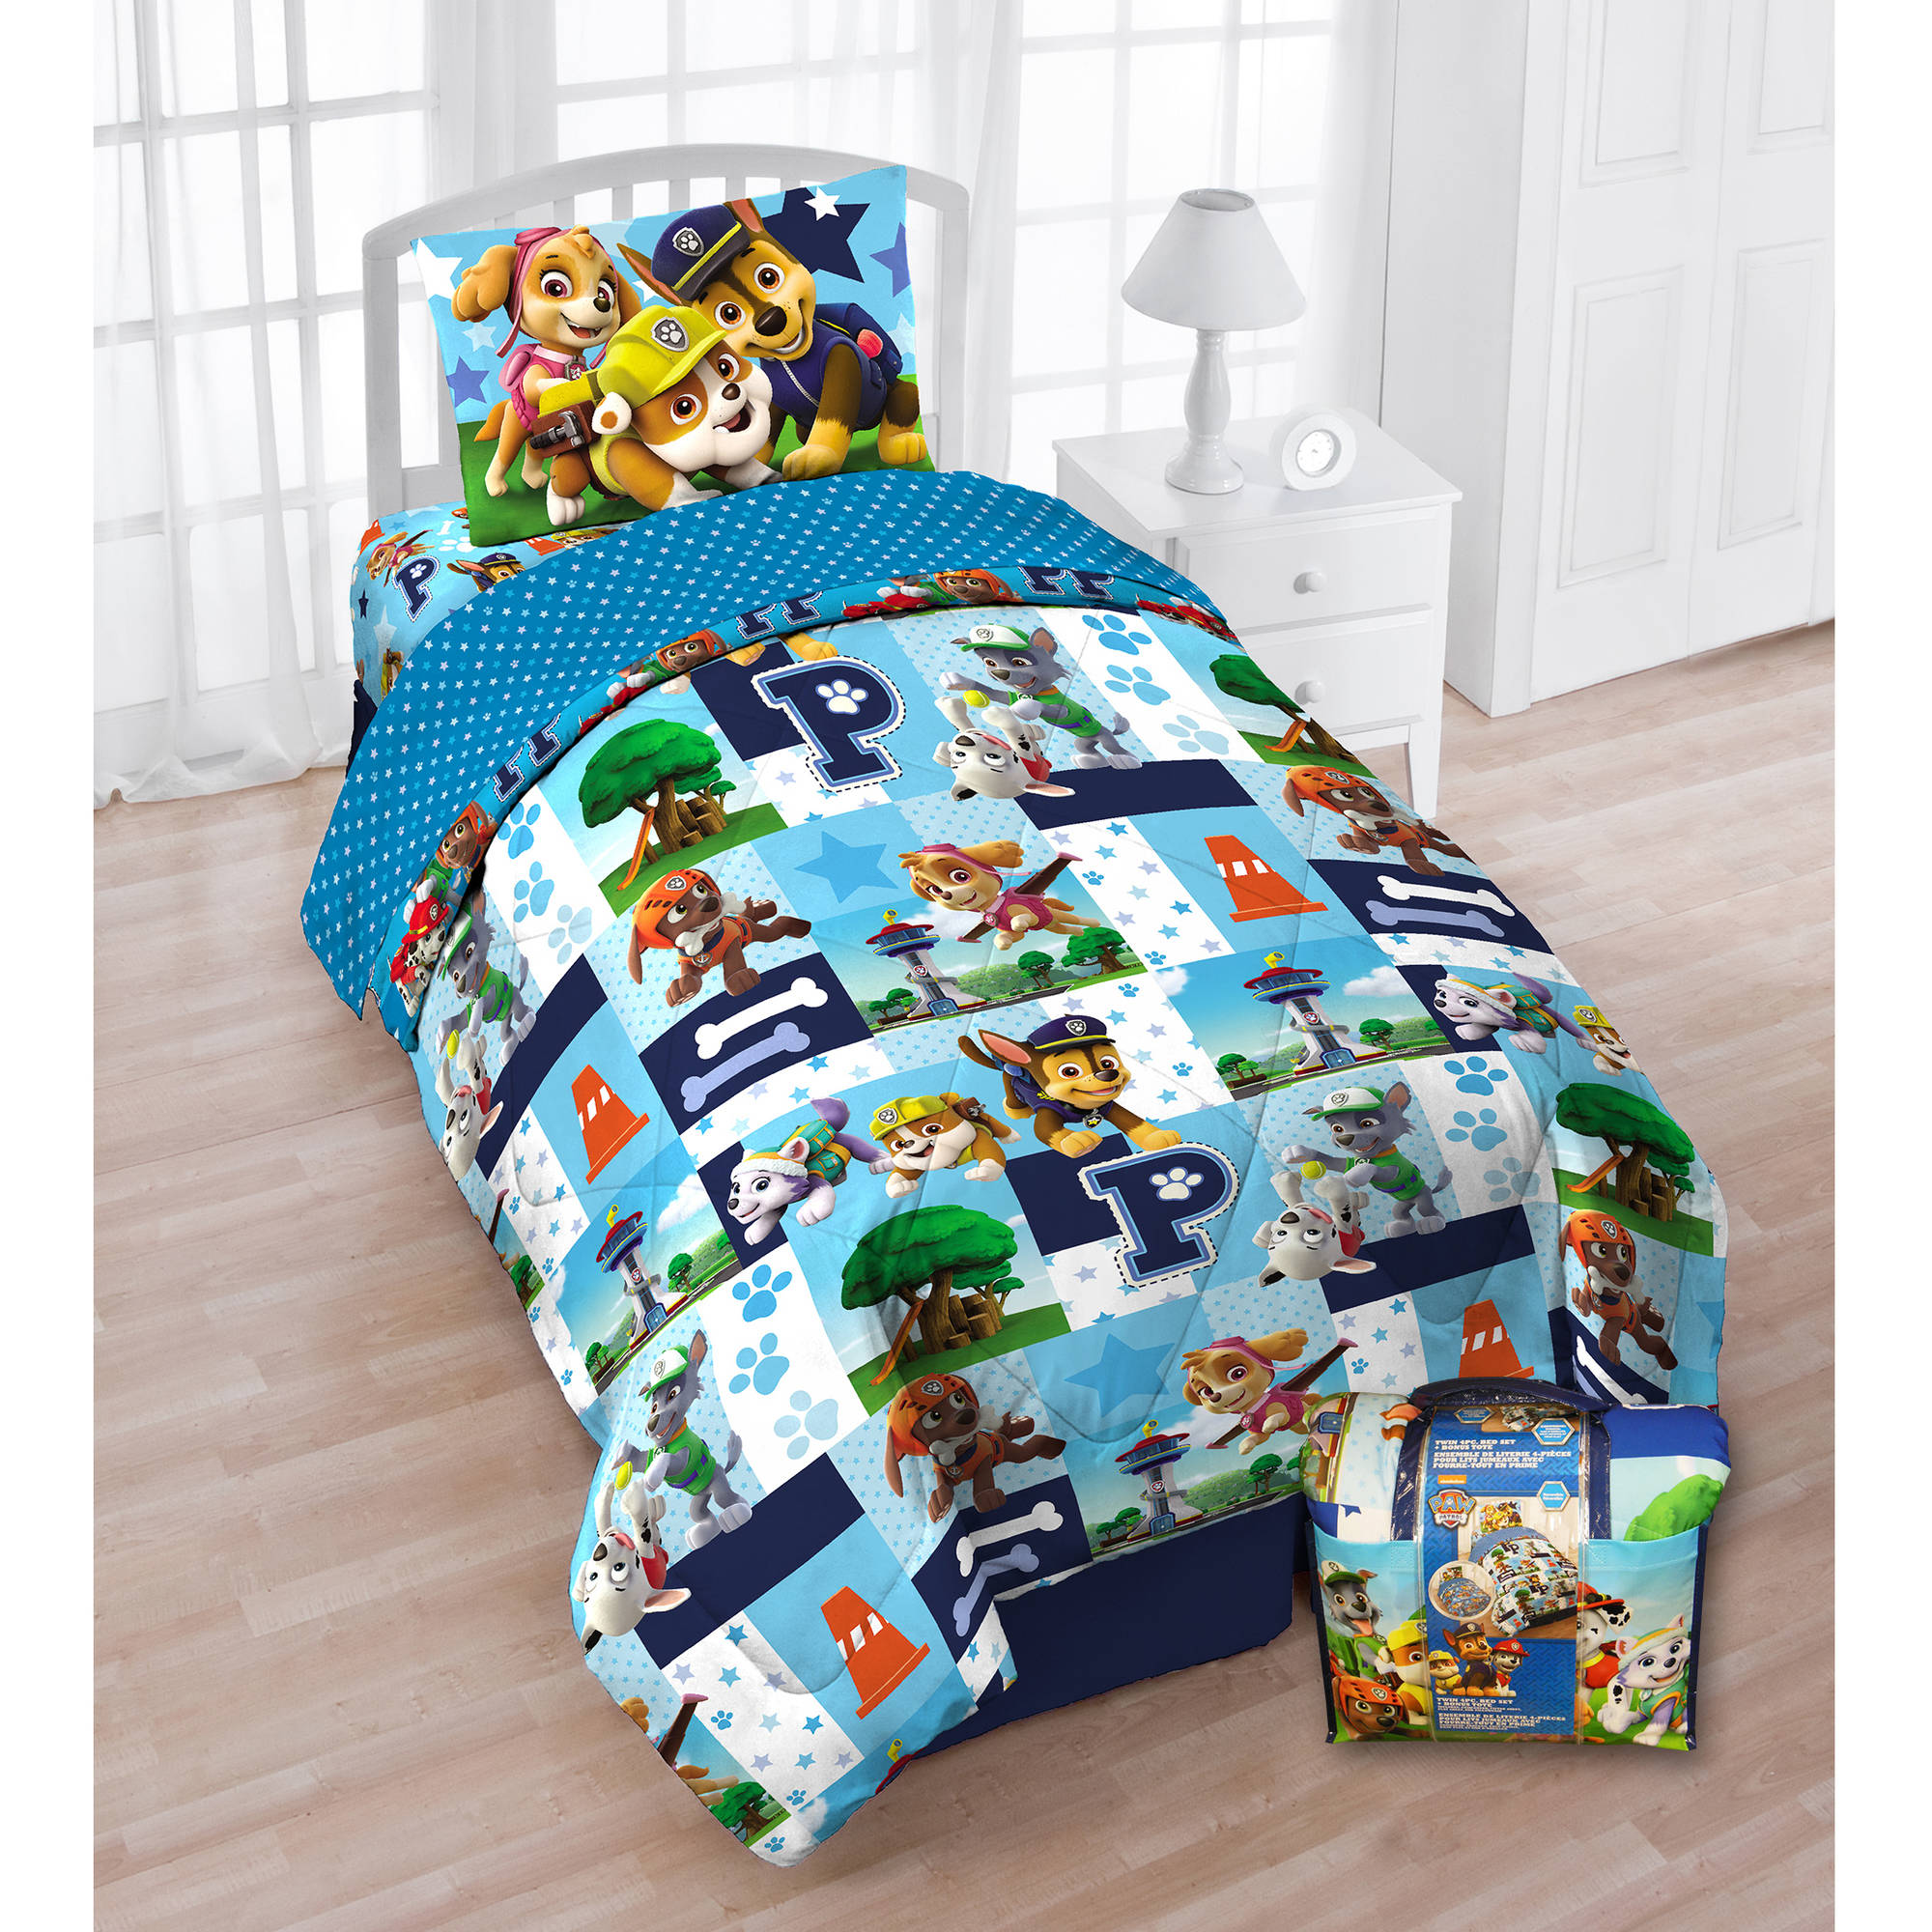 Kids' Bedding - Walmart.com